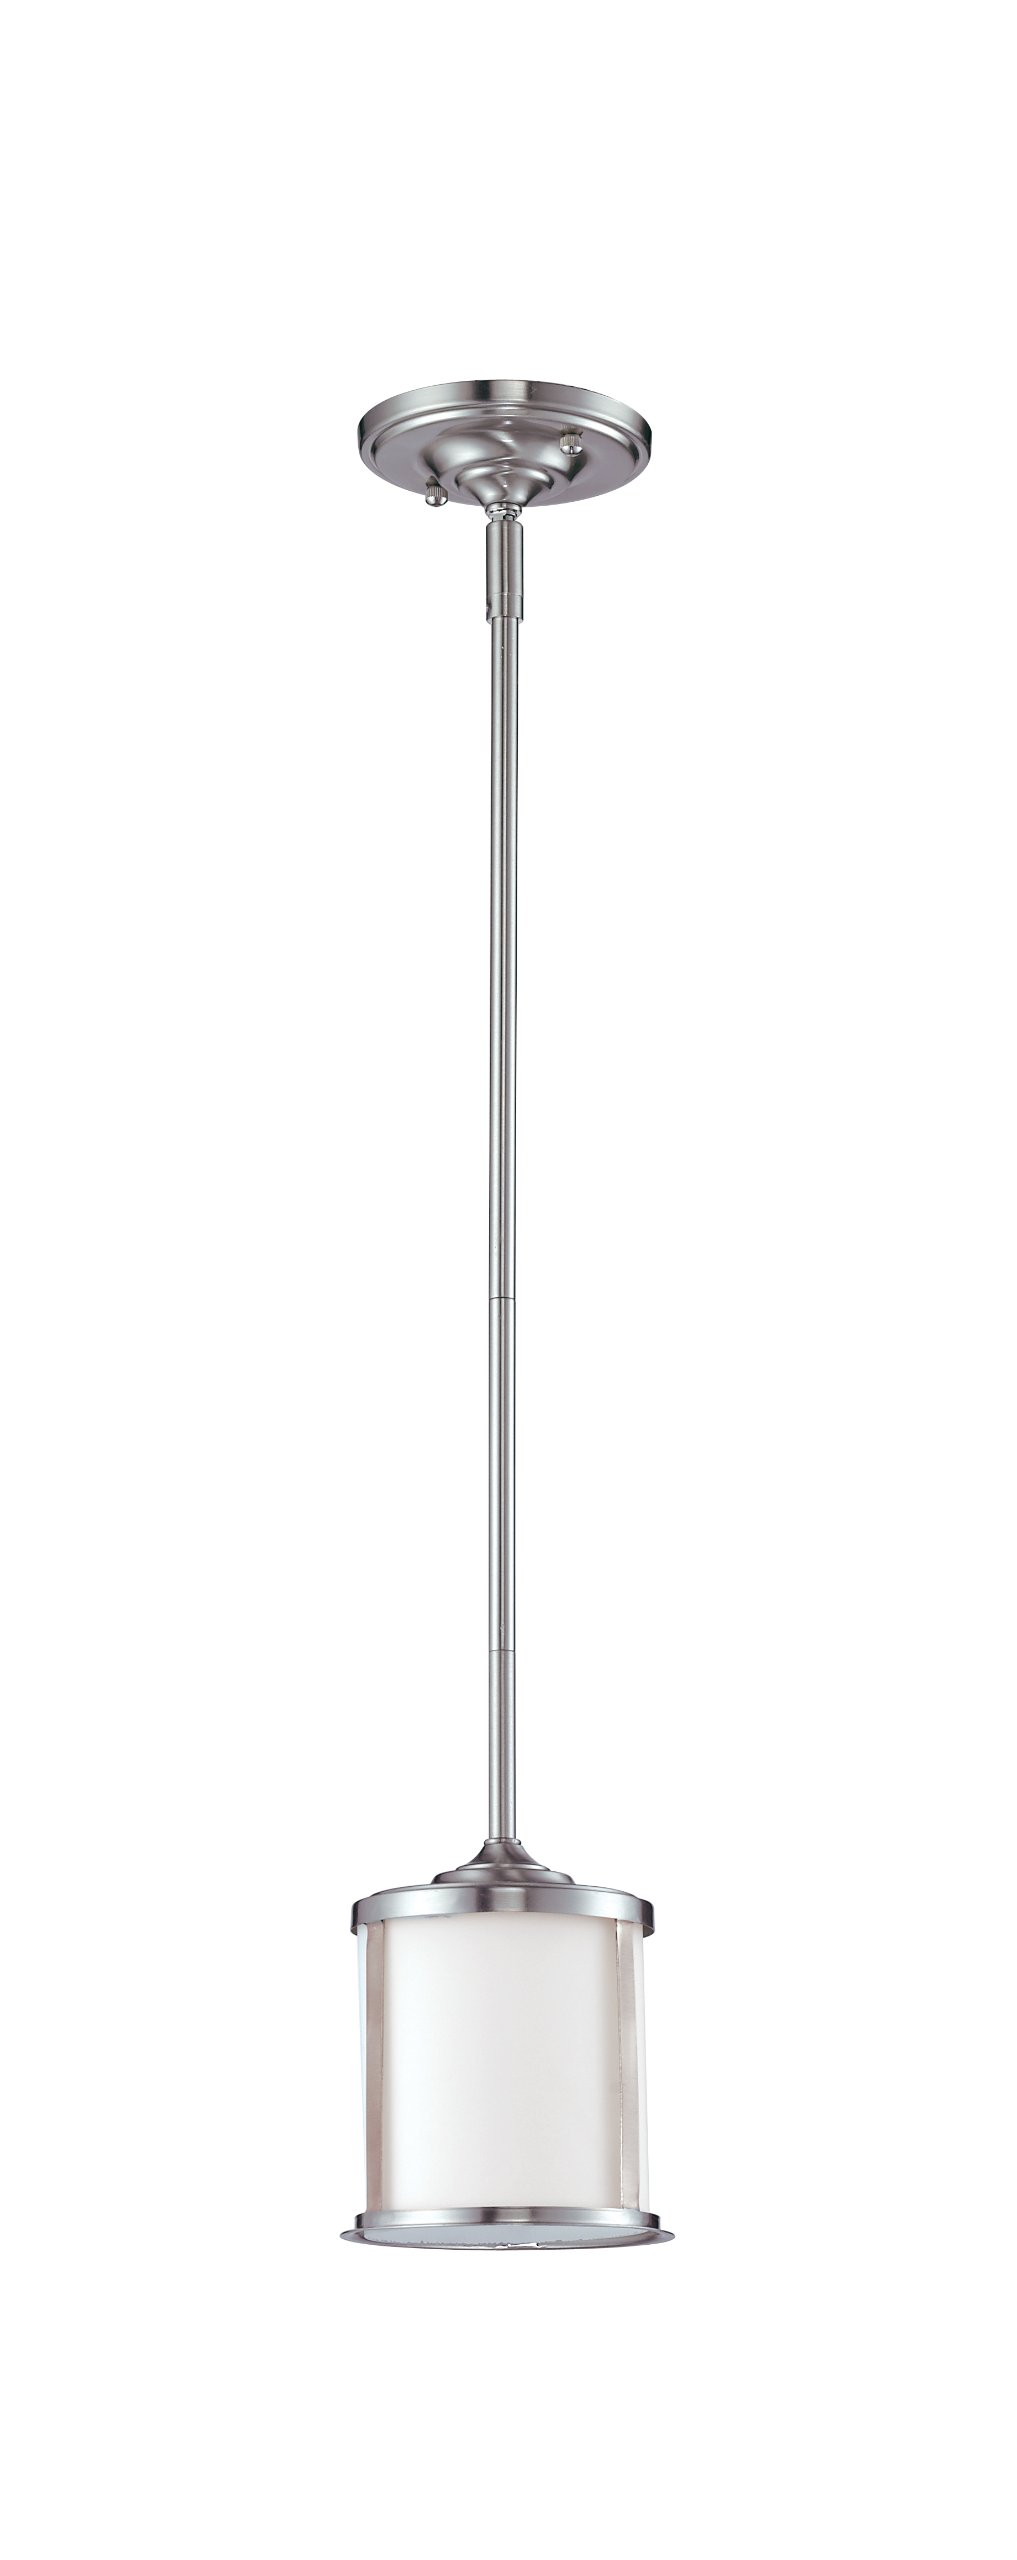 Z-Lite 2002MP-BN Sonna One Light Mini Pendant, Steel Frame, Brushed Nickel Finish and Matte Opal Shade of Glass Material by Z-Lite (Image #1)